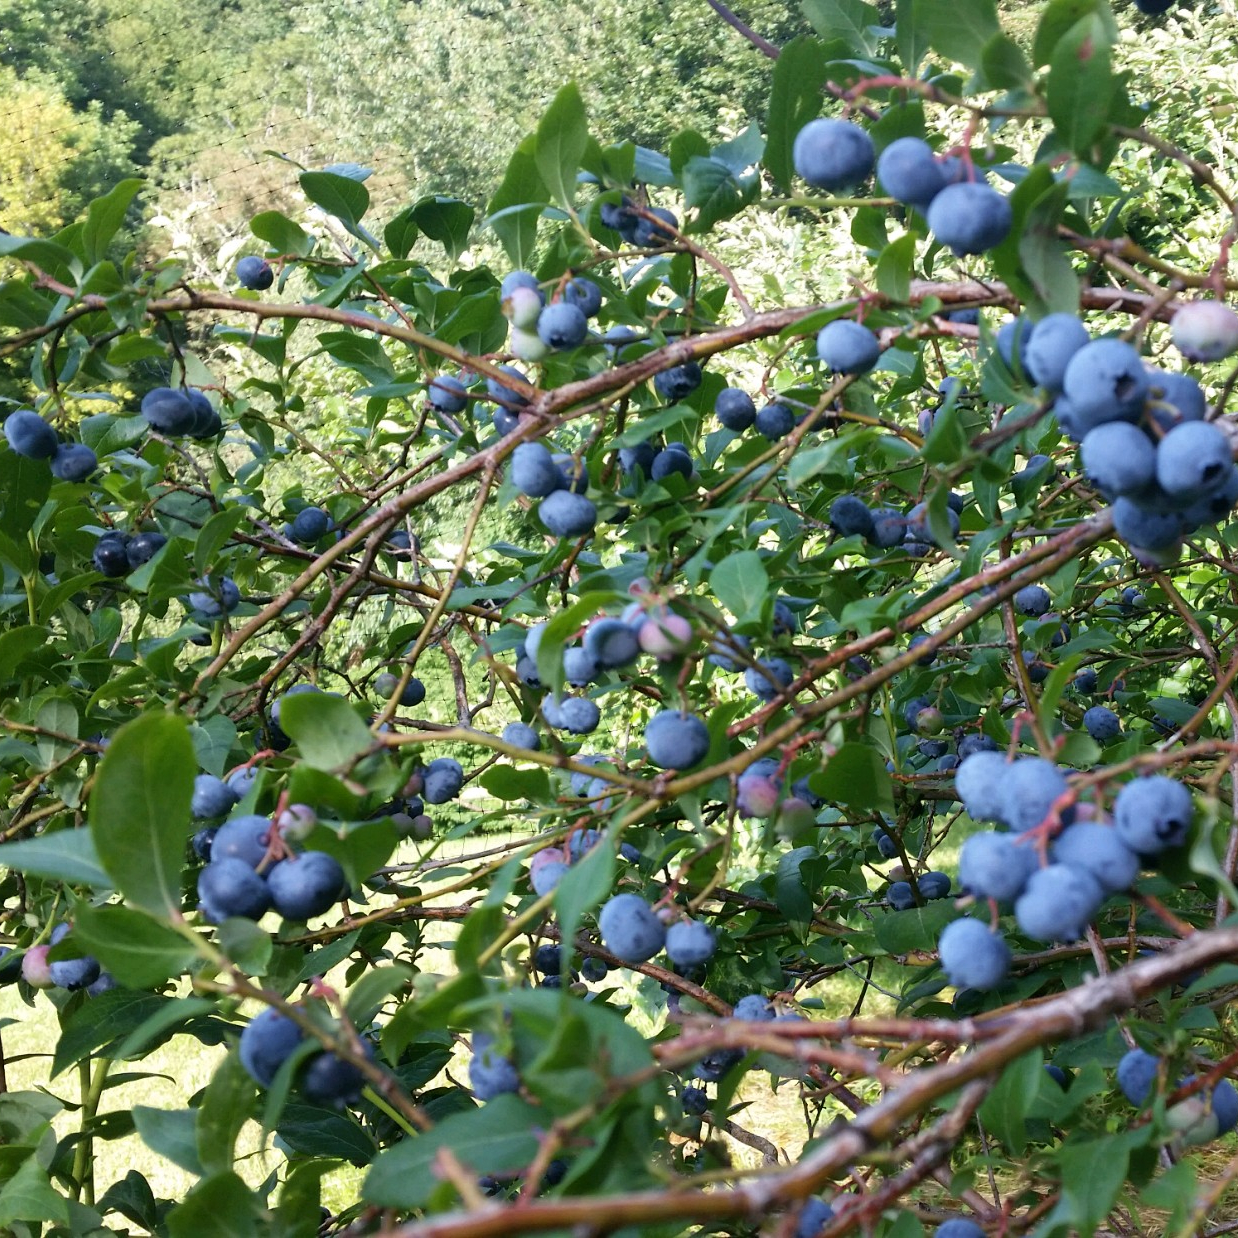 J&D Blueberry Farm